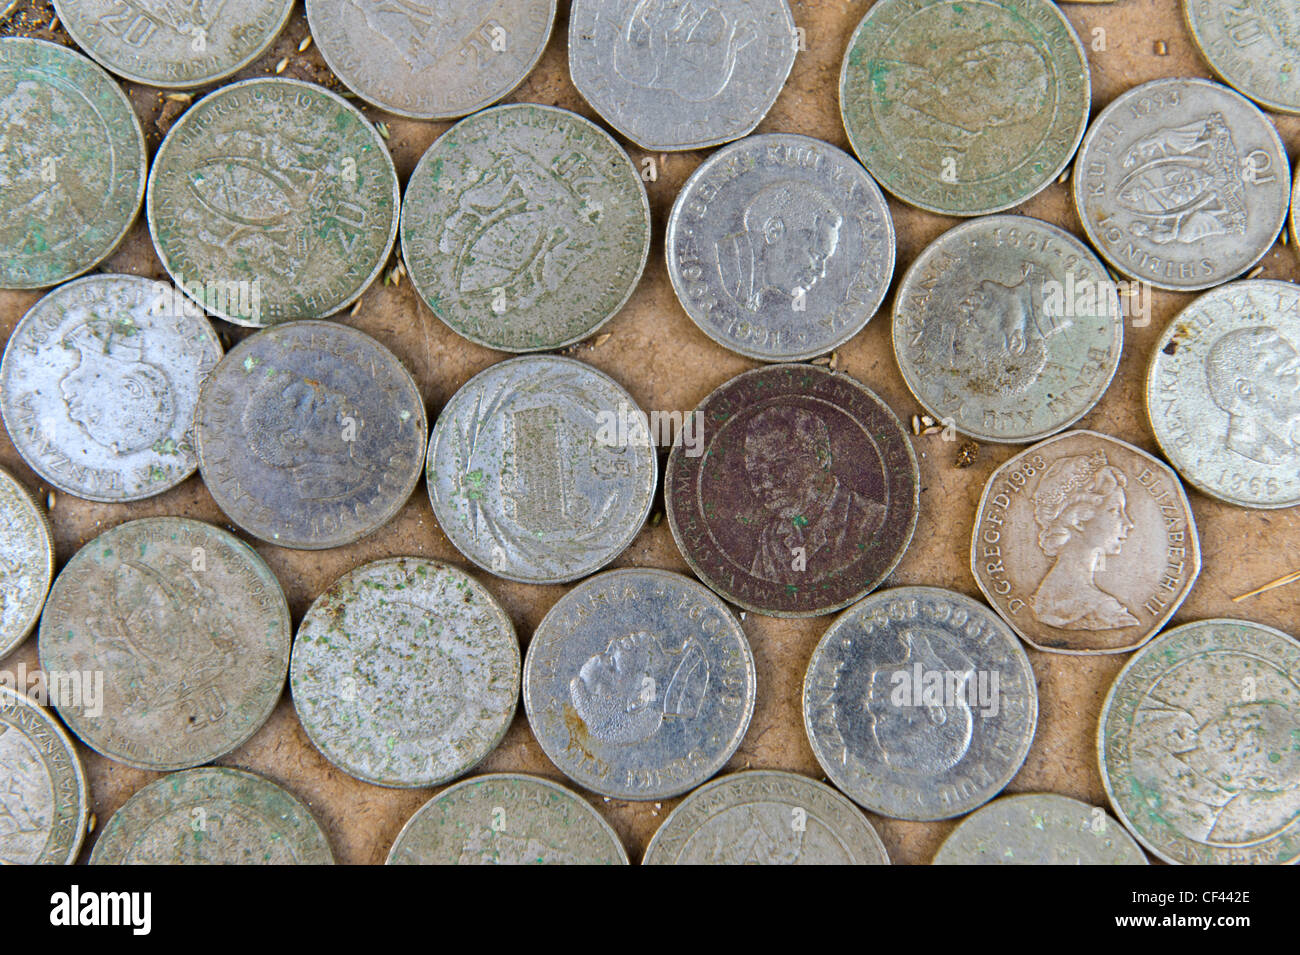 Collection of old coins from Zanzibar Tanzania - Stock Image